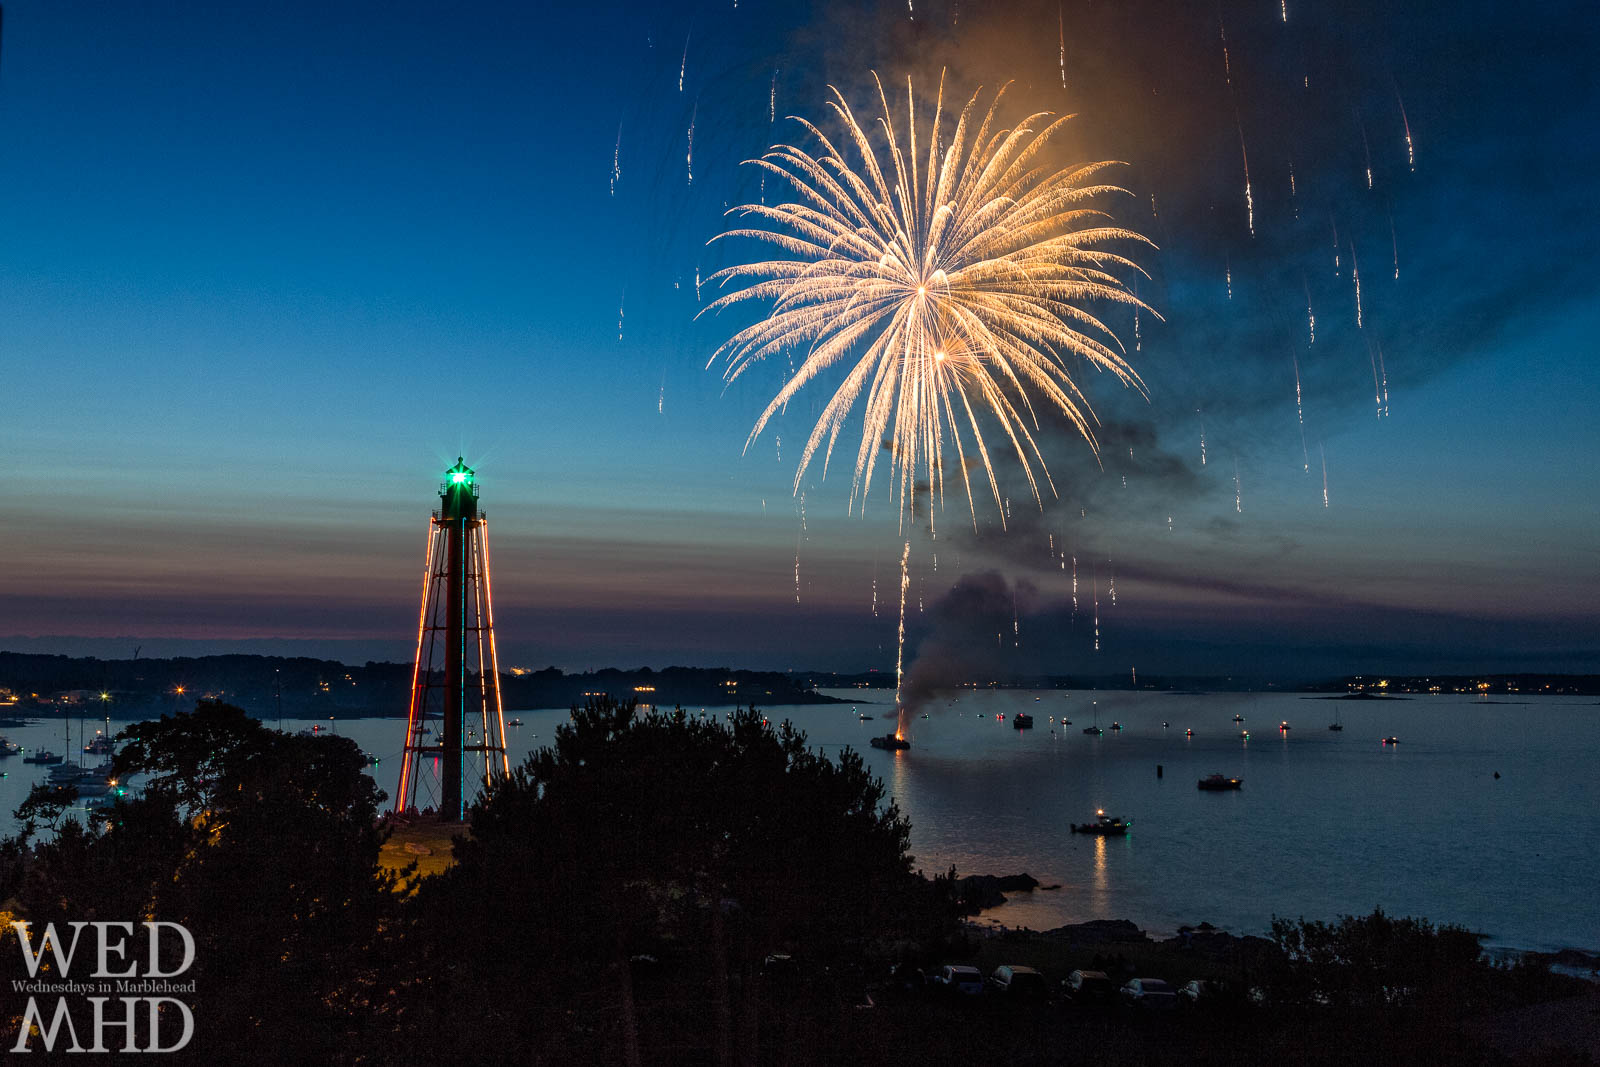 Fireworks explode over Marblehead Harbor with Marblehead Light standing tall on the Fourth of July